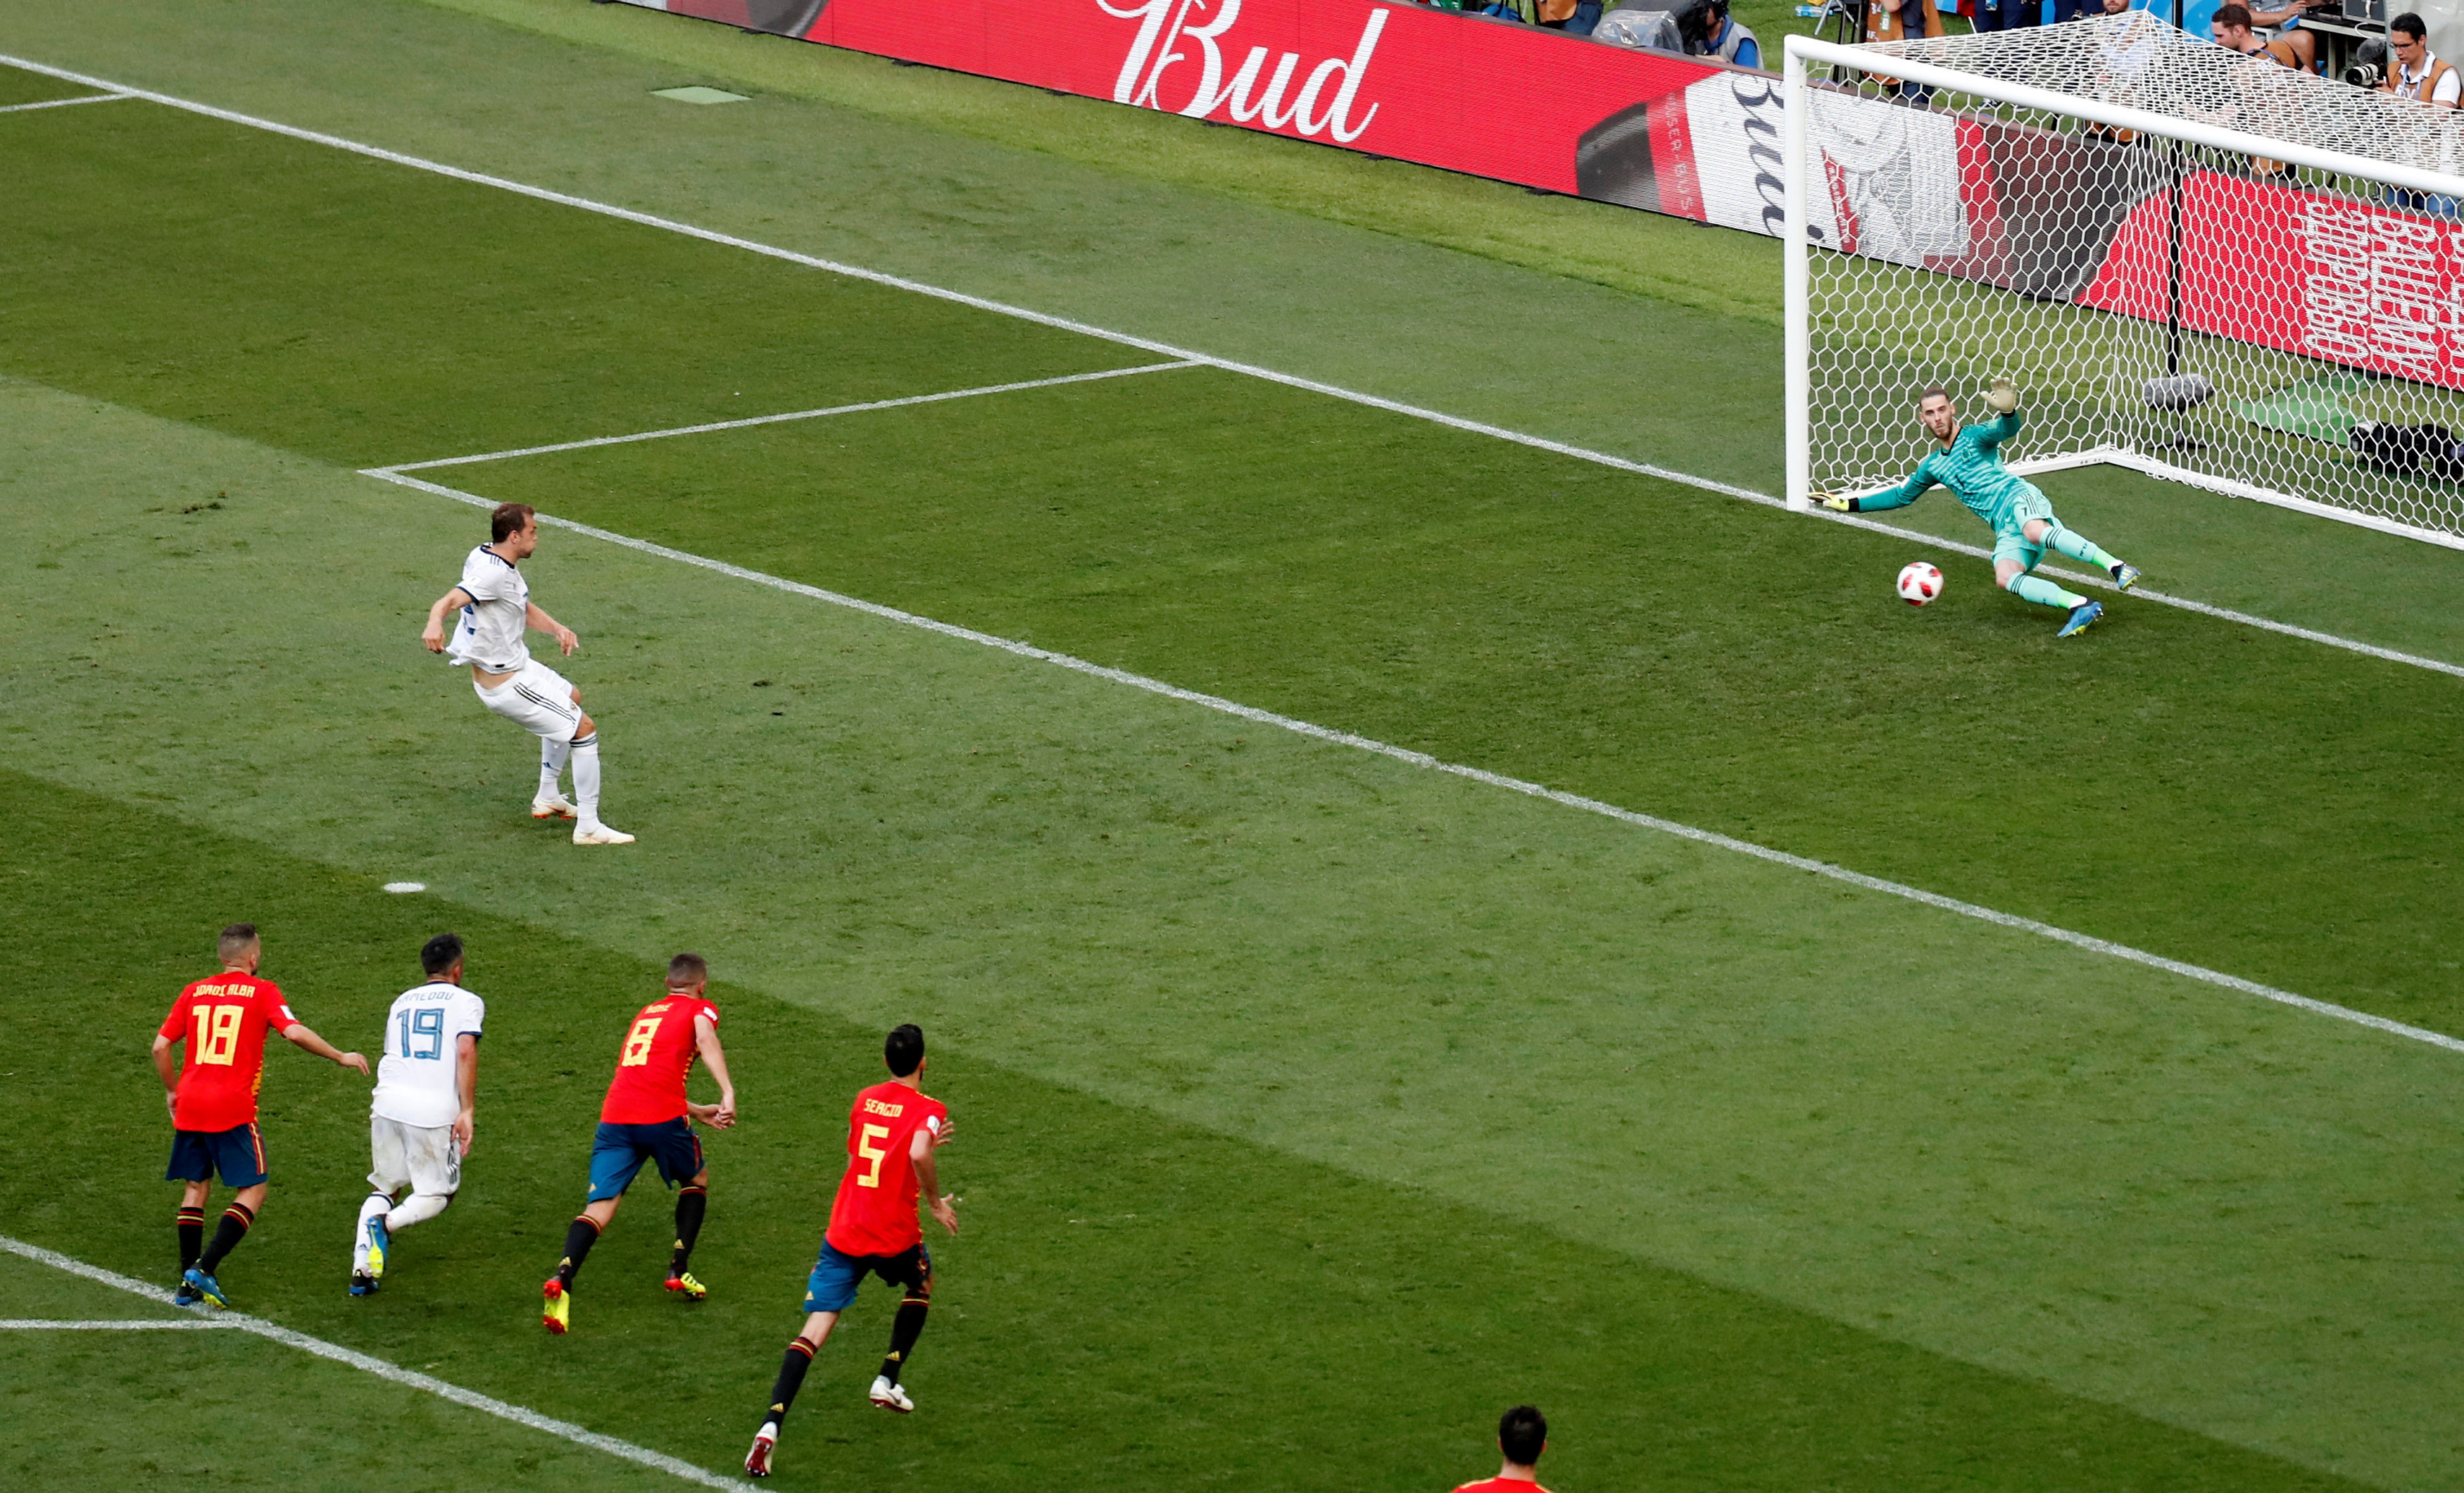 Soccer Football - World Cup - Round of 16 - Spain vs Russia - Luzhniki Stadium, Moscow, Russia - July 1, 2018 Russia's Artem Dzyuba scores their first goal from the penalty spot